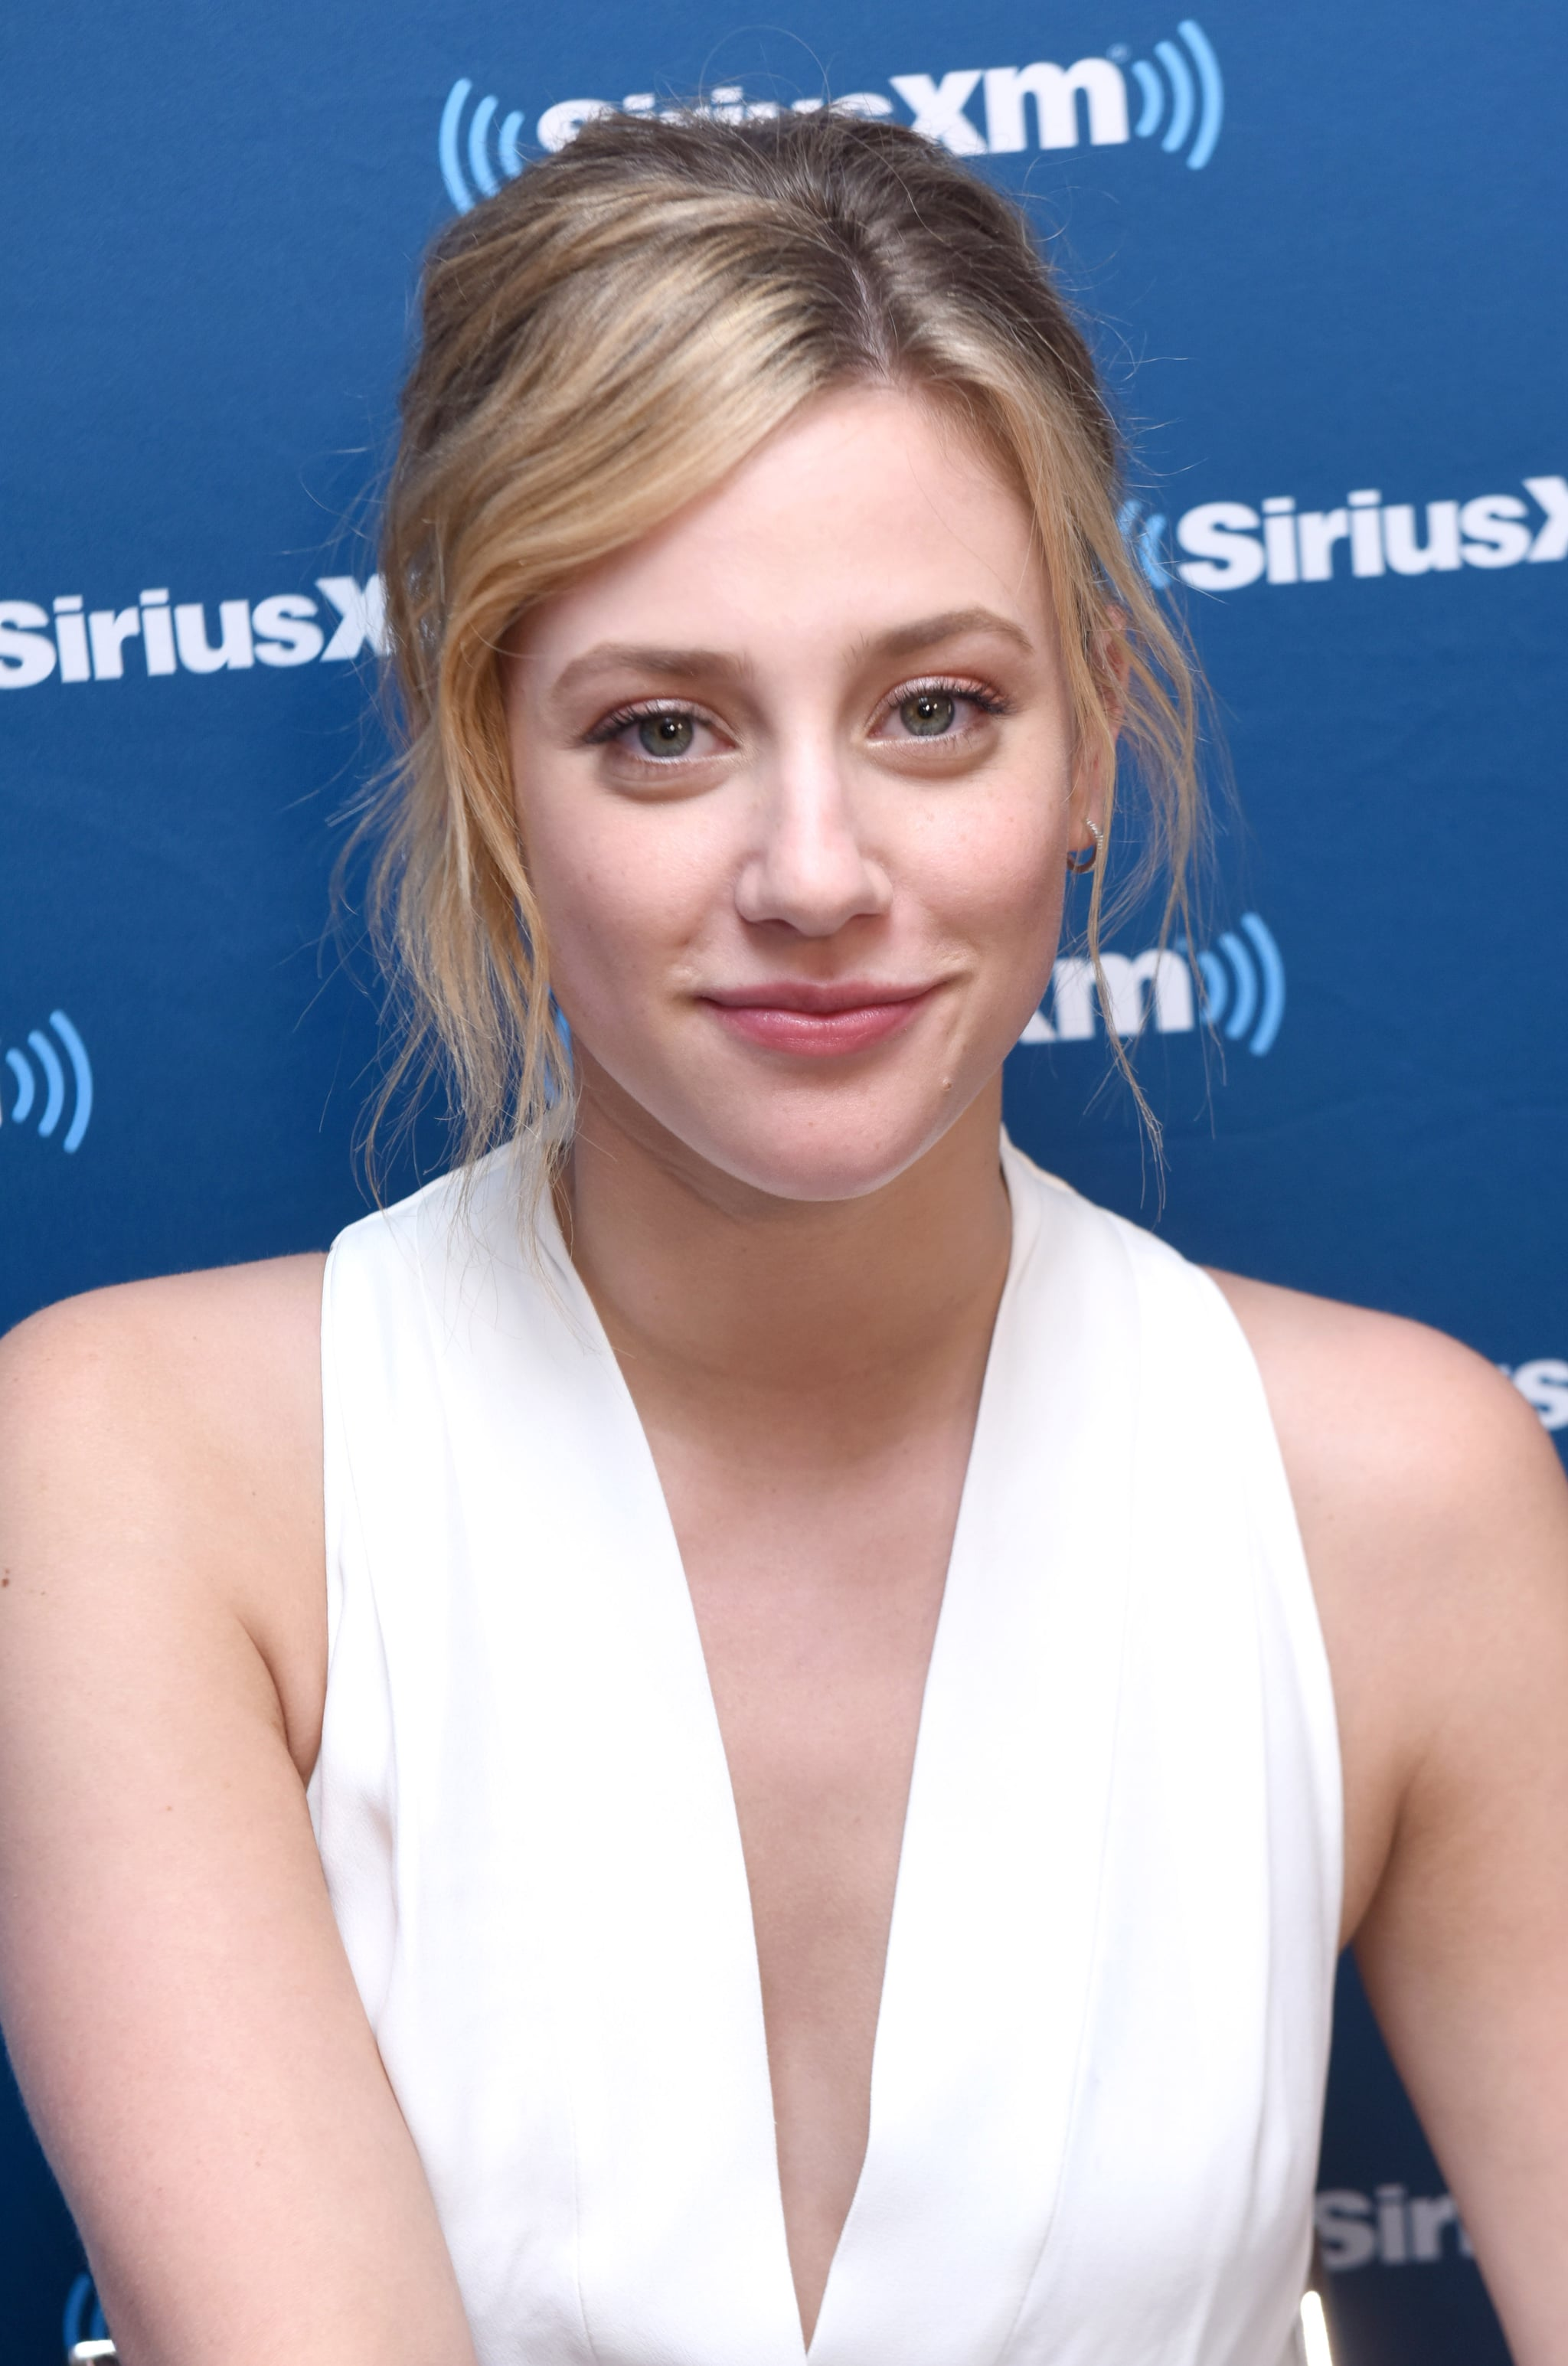 SAN DIEGO, CA - JULY 21:  Lili Reinhart attends SiriusXM's Entertainment Weekly Radio Broadcasts Live From Comic Con in San Diego at Hard Rock Hotel San Diego on July 20, 2018 in San Diego, California.  (Photo by Vivien Killilea/Getty Images for SiriusXM)